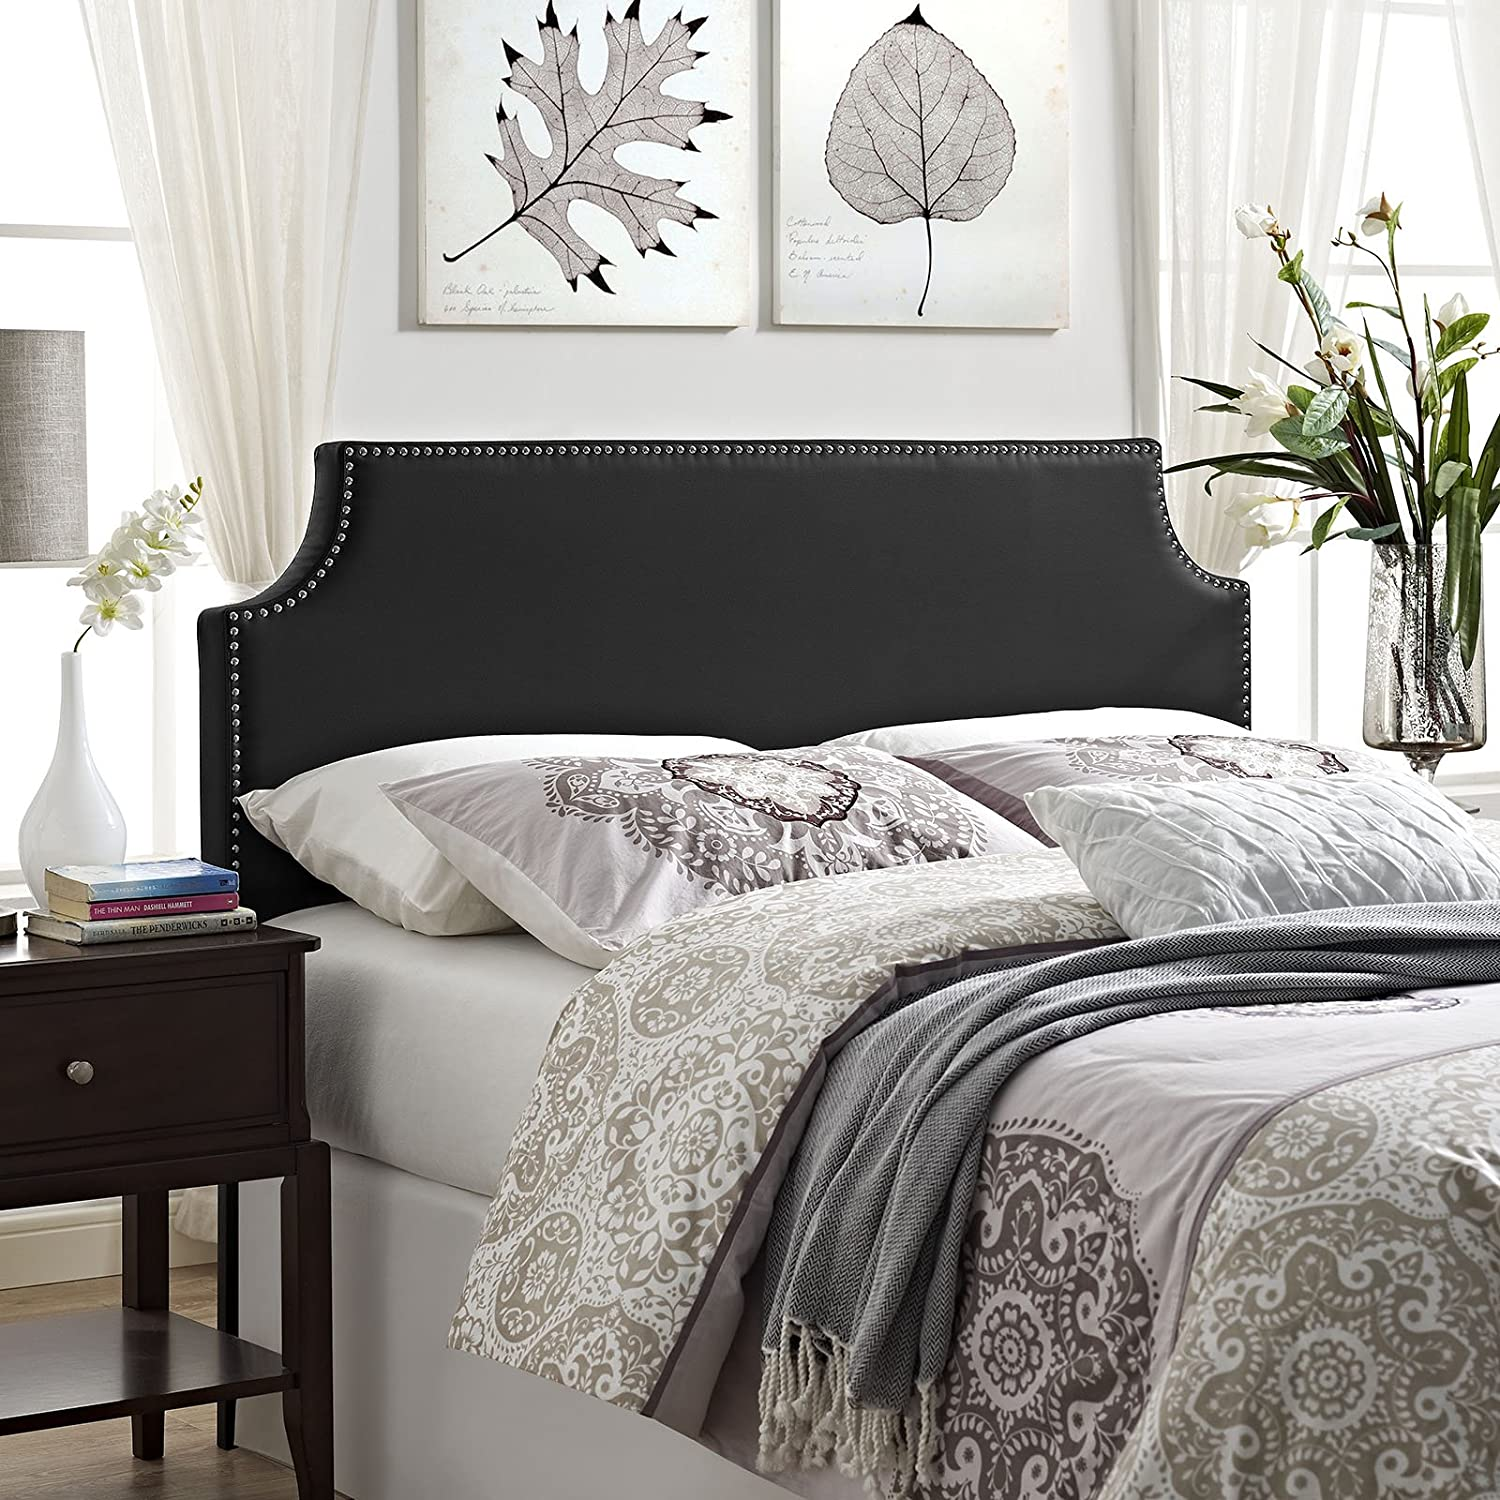 Modway Laura Faux Leather Upholstered Queen Size Headboard with Cut-Out Edges and Nailhead Trim in Black